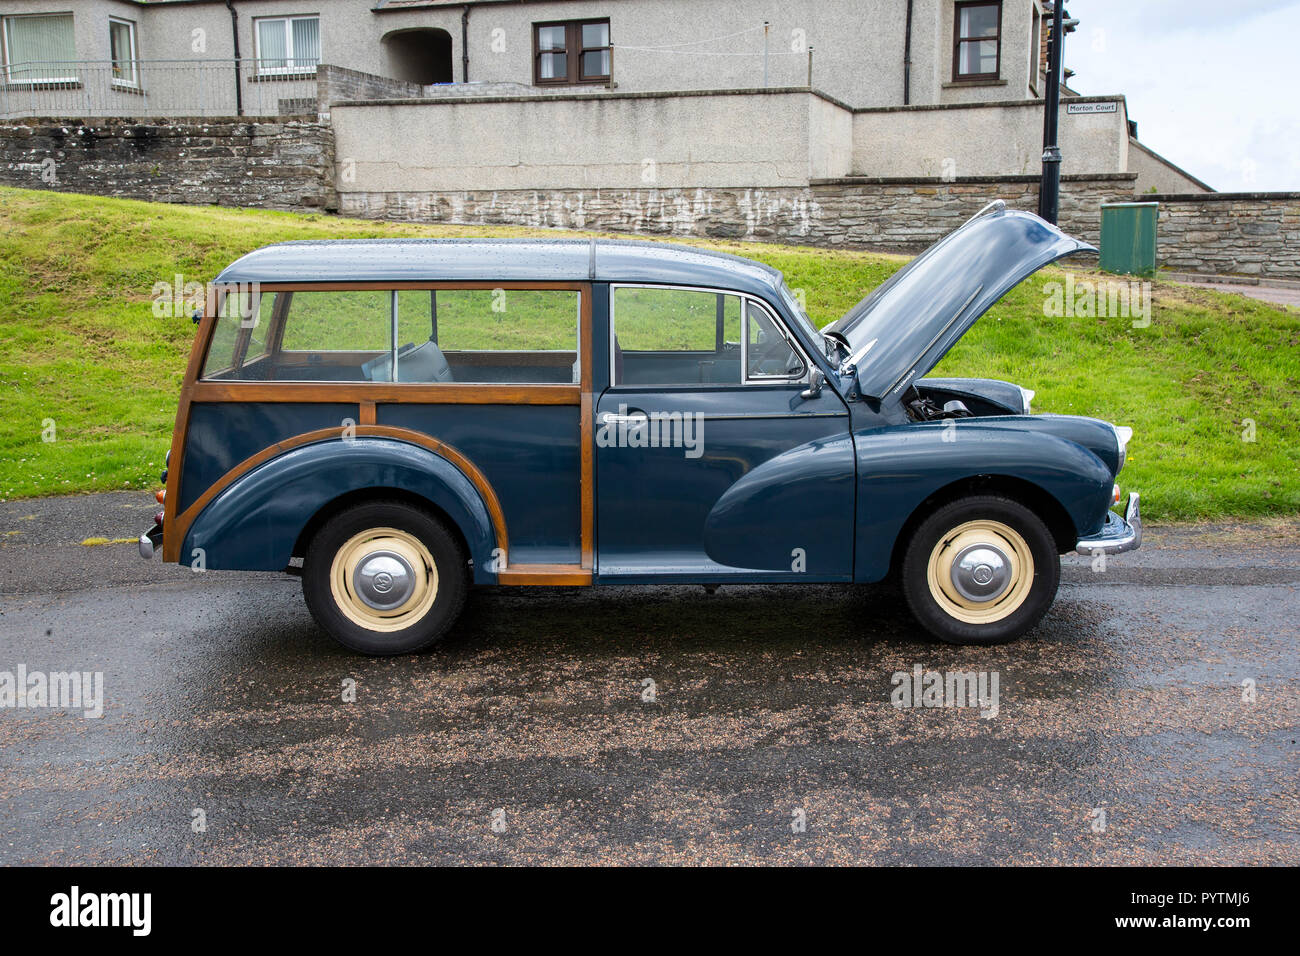 Classic Morris Minor Traveller viewed from the side with the bonnet open - Stock Image